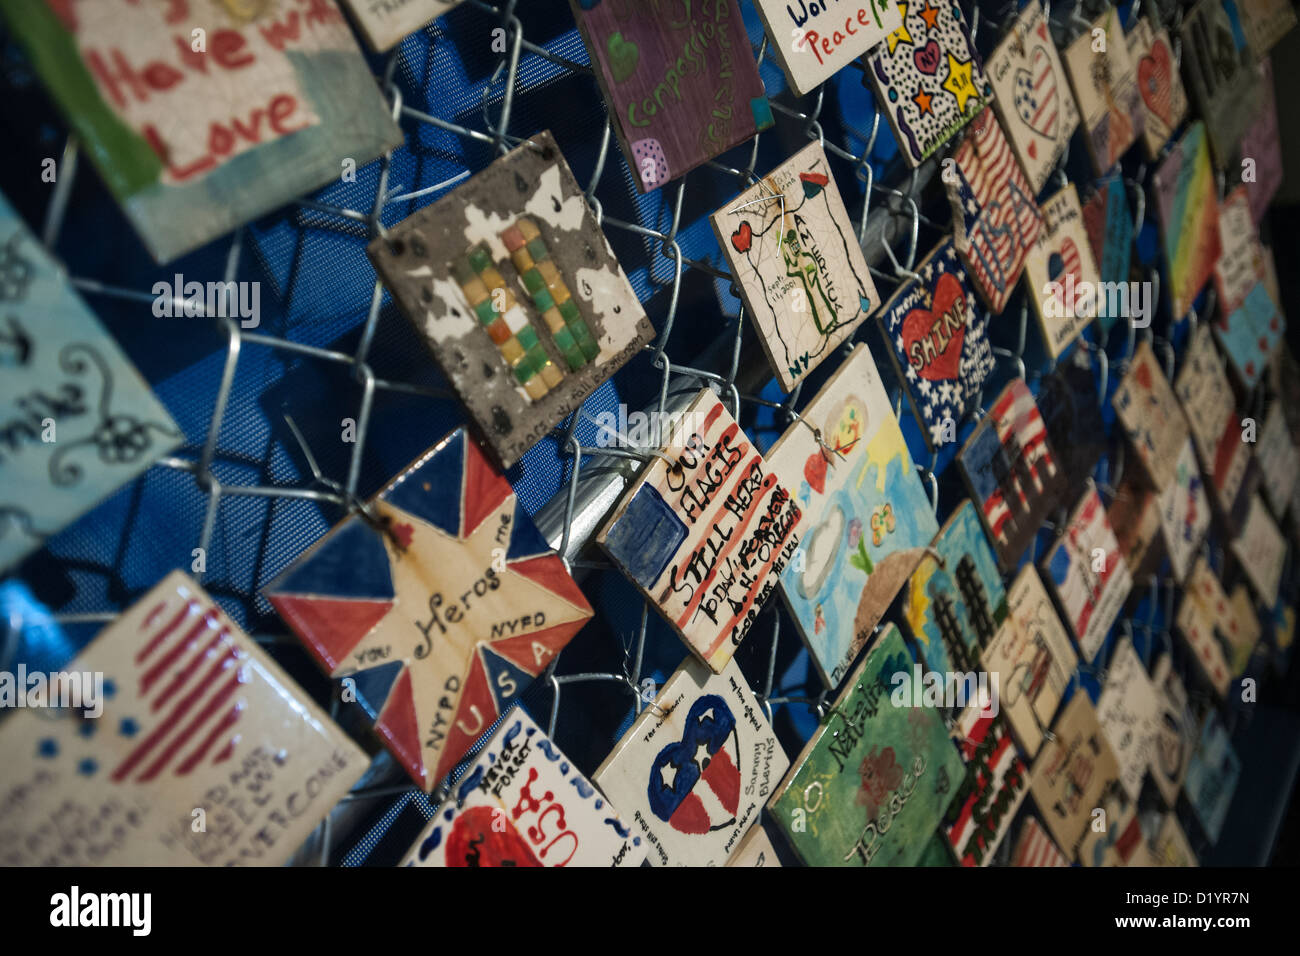 Exhibit of tiles memorializing the World Trade Center victims opens in the Jefferson Market Library in Greenwich - Stock Image